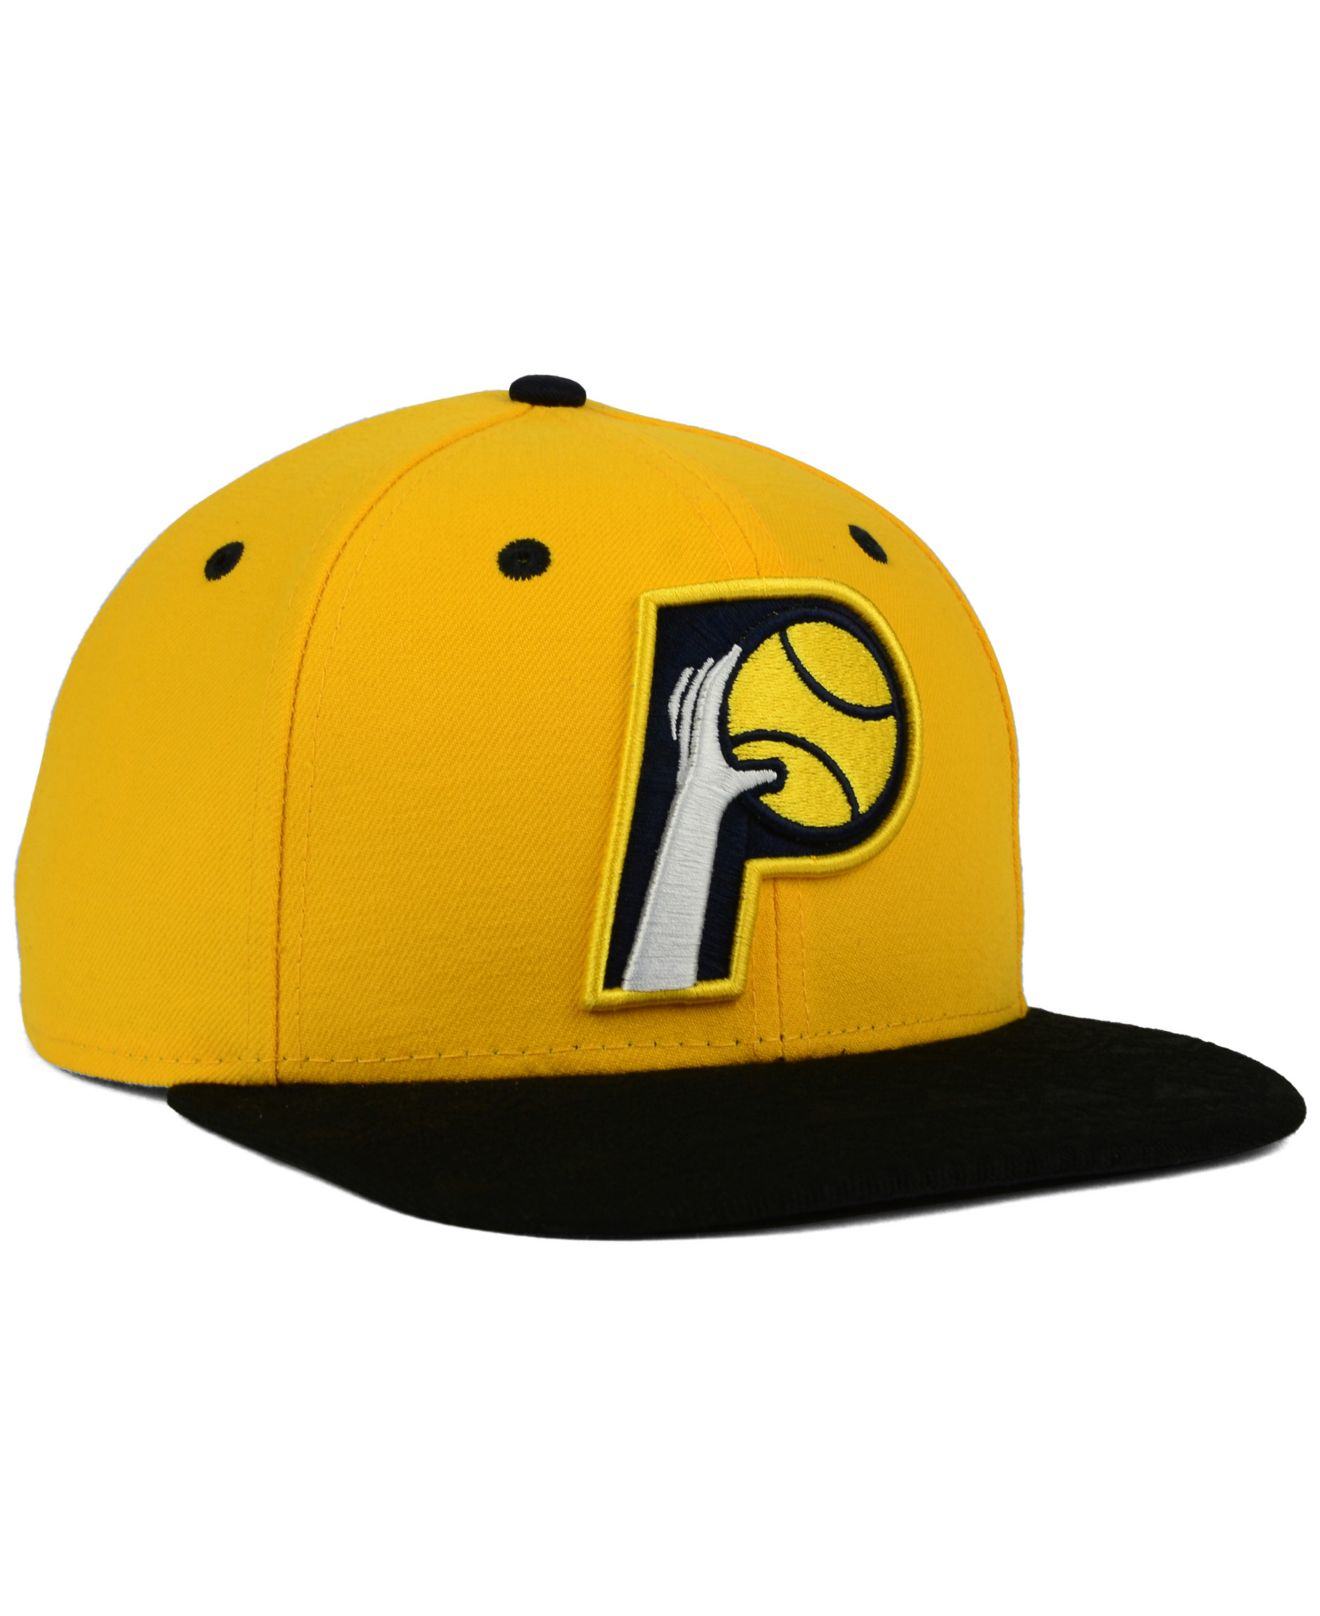 super popular 7fede 0c4ed ... greece lyst ktz indiana pacers tone 9fifty snapback cap in yellow for  men 05dc3 63387